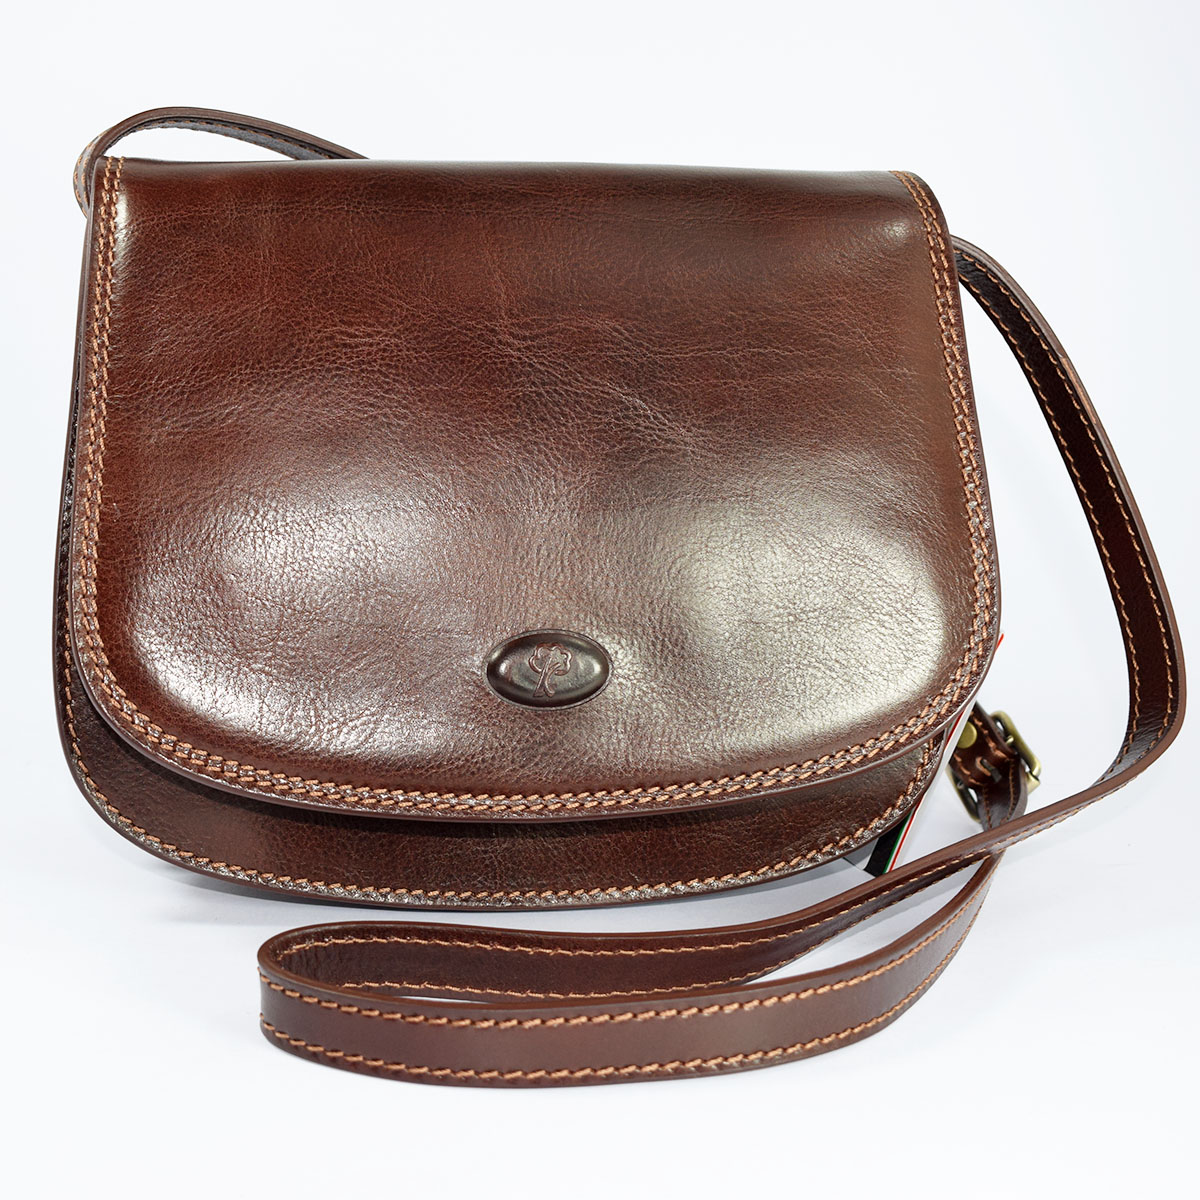 64053 Leather shoulder bag by Bottega Fiorentina